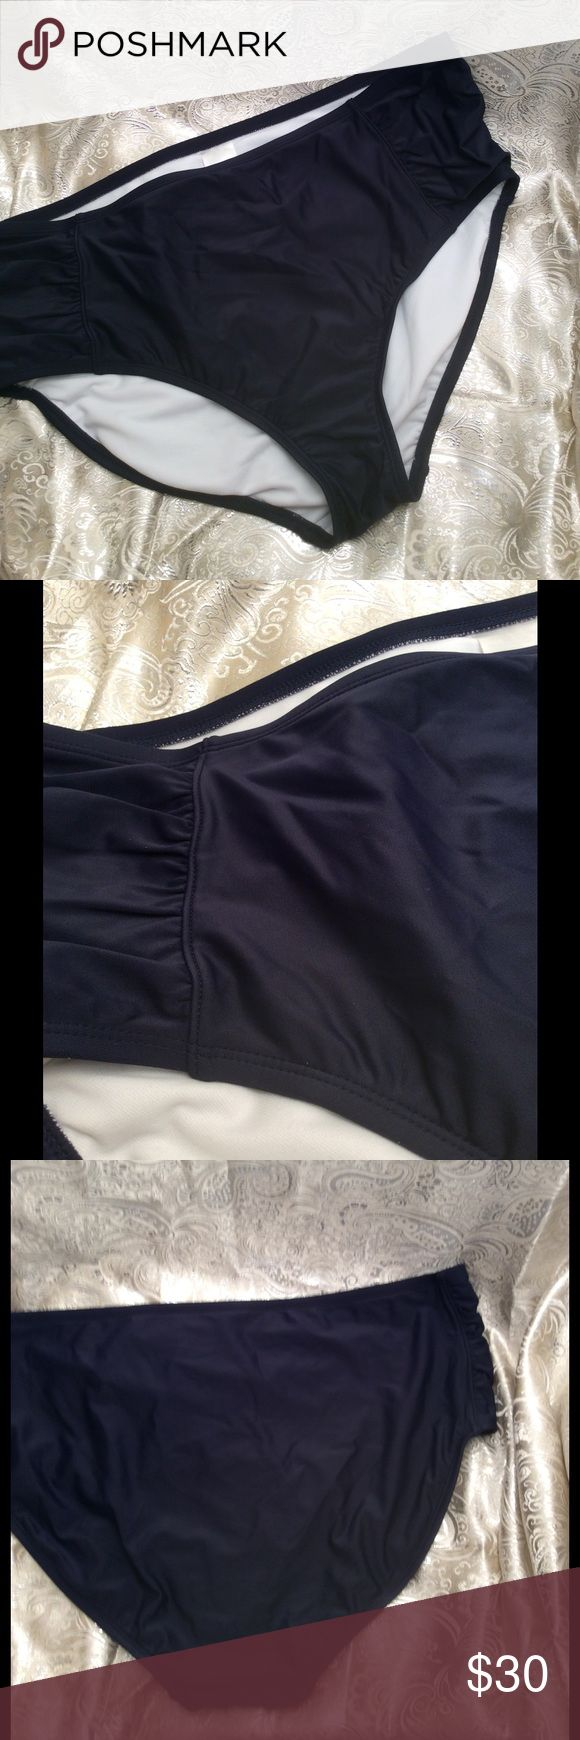 Ava & Viv navy blue full bikini brief nwot plus Ava & Viv women's plus size bikini bottom with side rouching. Navy blue, full coverage bottom. New without tags. Size 20/22. ** coordinating pieces in separate listing Ava & Viv Swim Bikinis